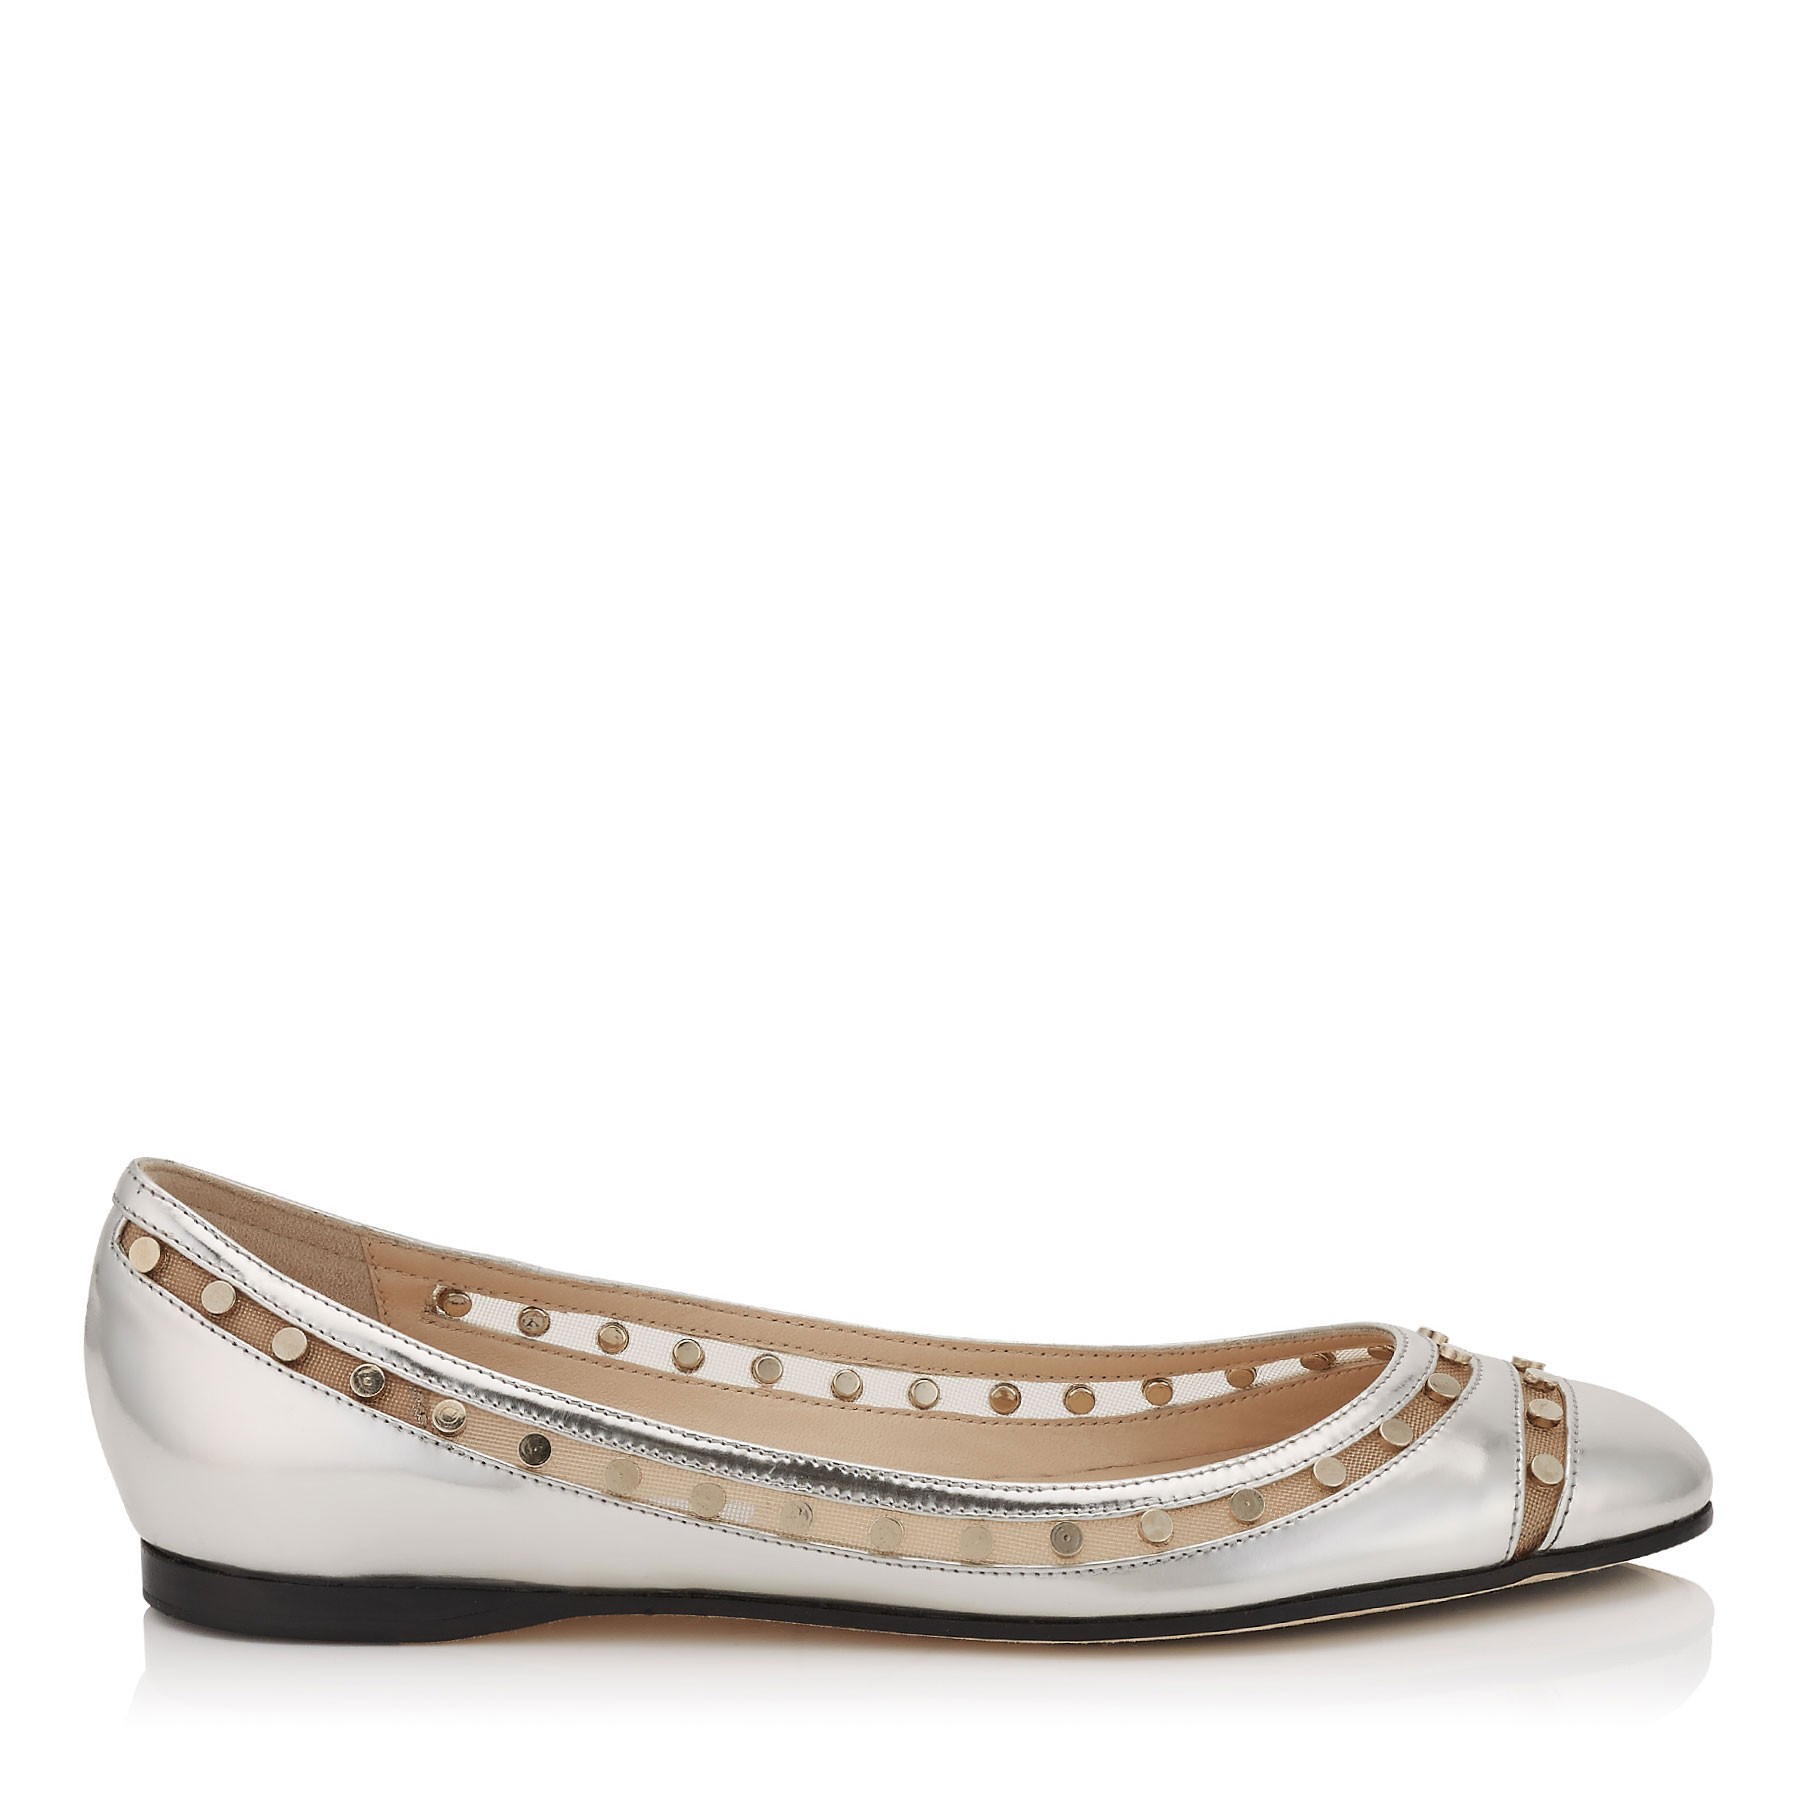 WES FLAT Silver Mirror Leather with Studded Mesh Ballet Flats